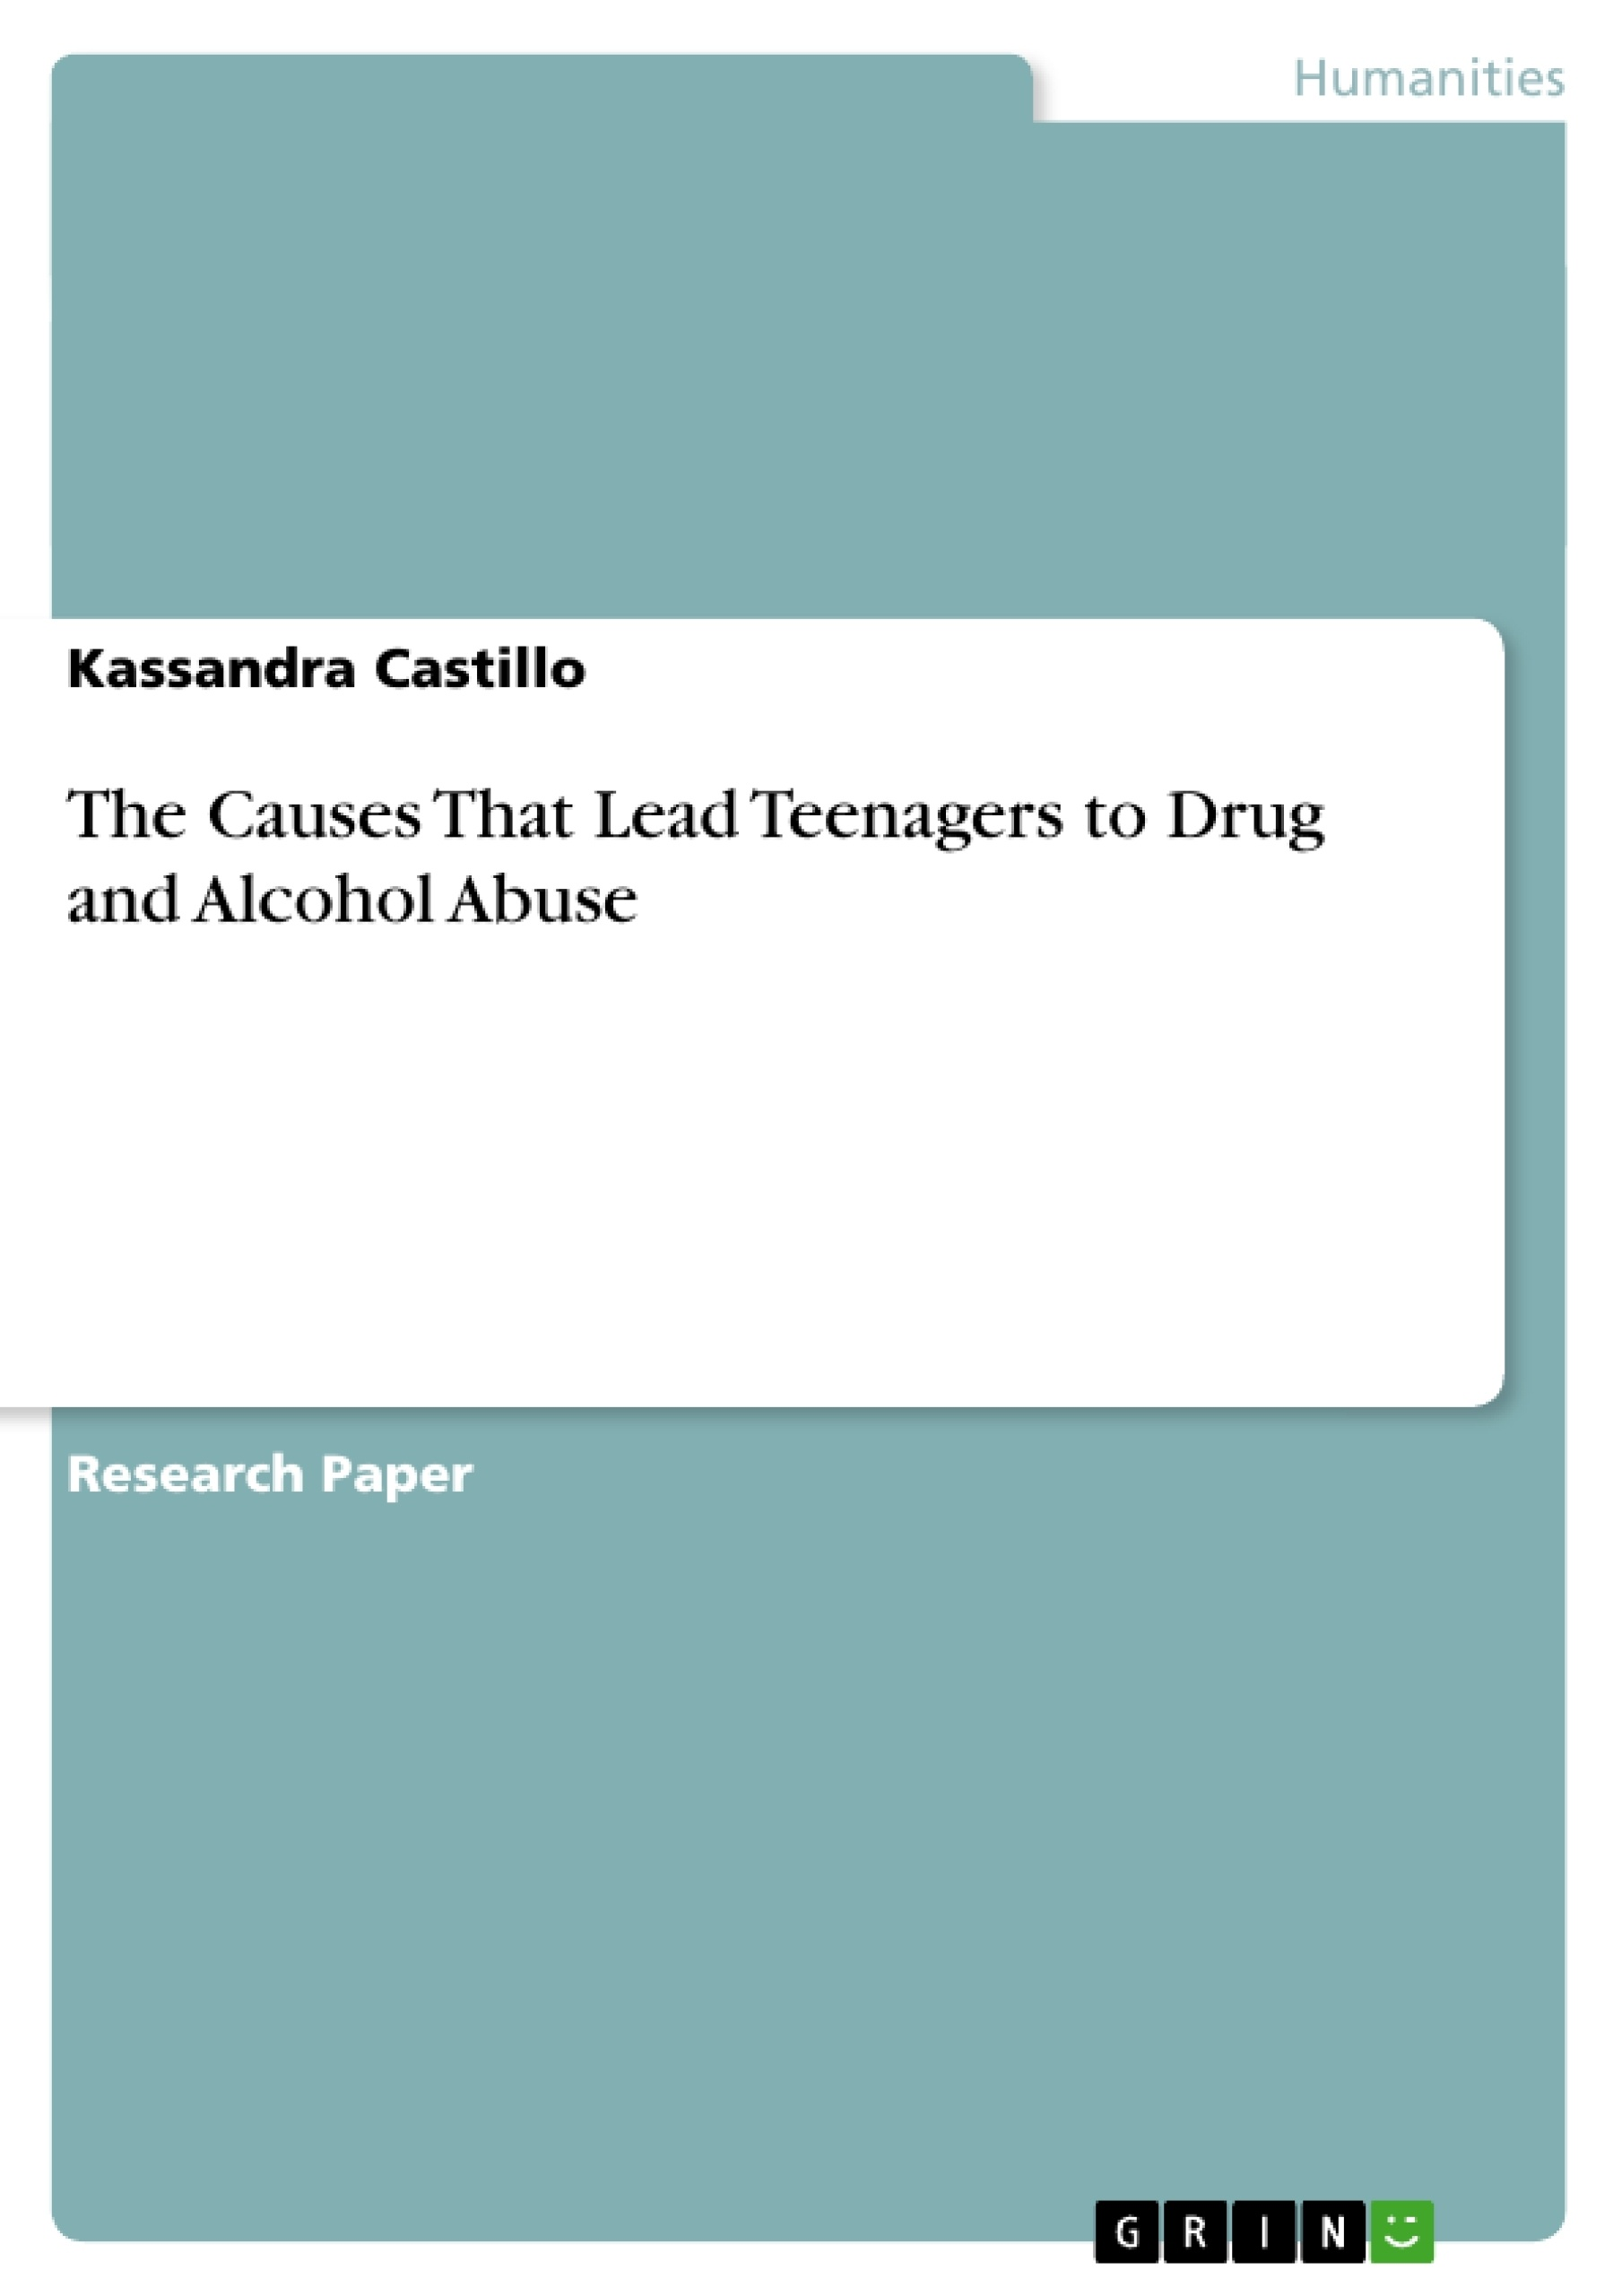 causes of alcoholism essay help me essay essay help me do my  the causes that lead teenagers to drug and alcohol abuse publish upload your own papers earn